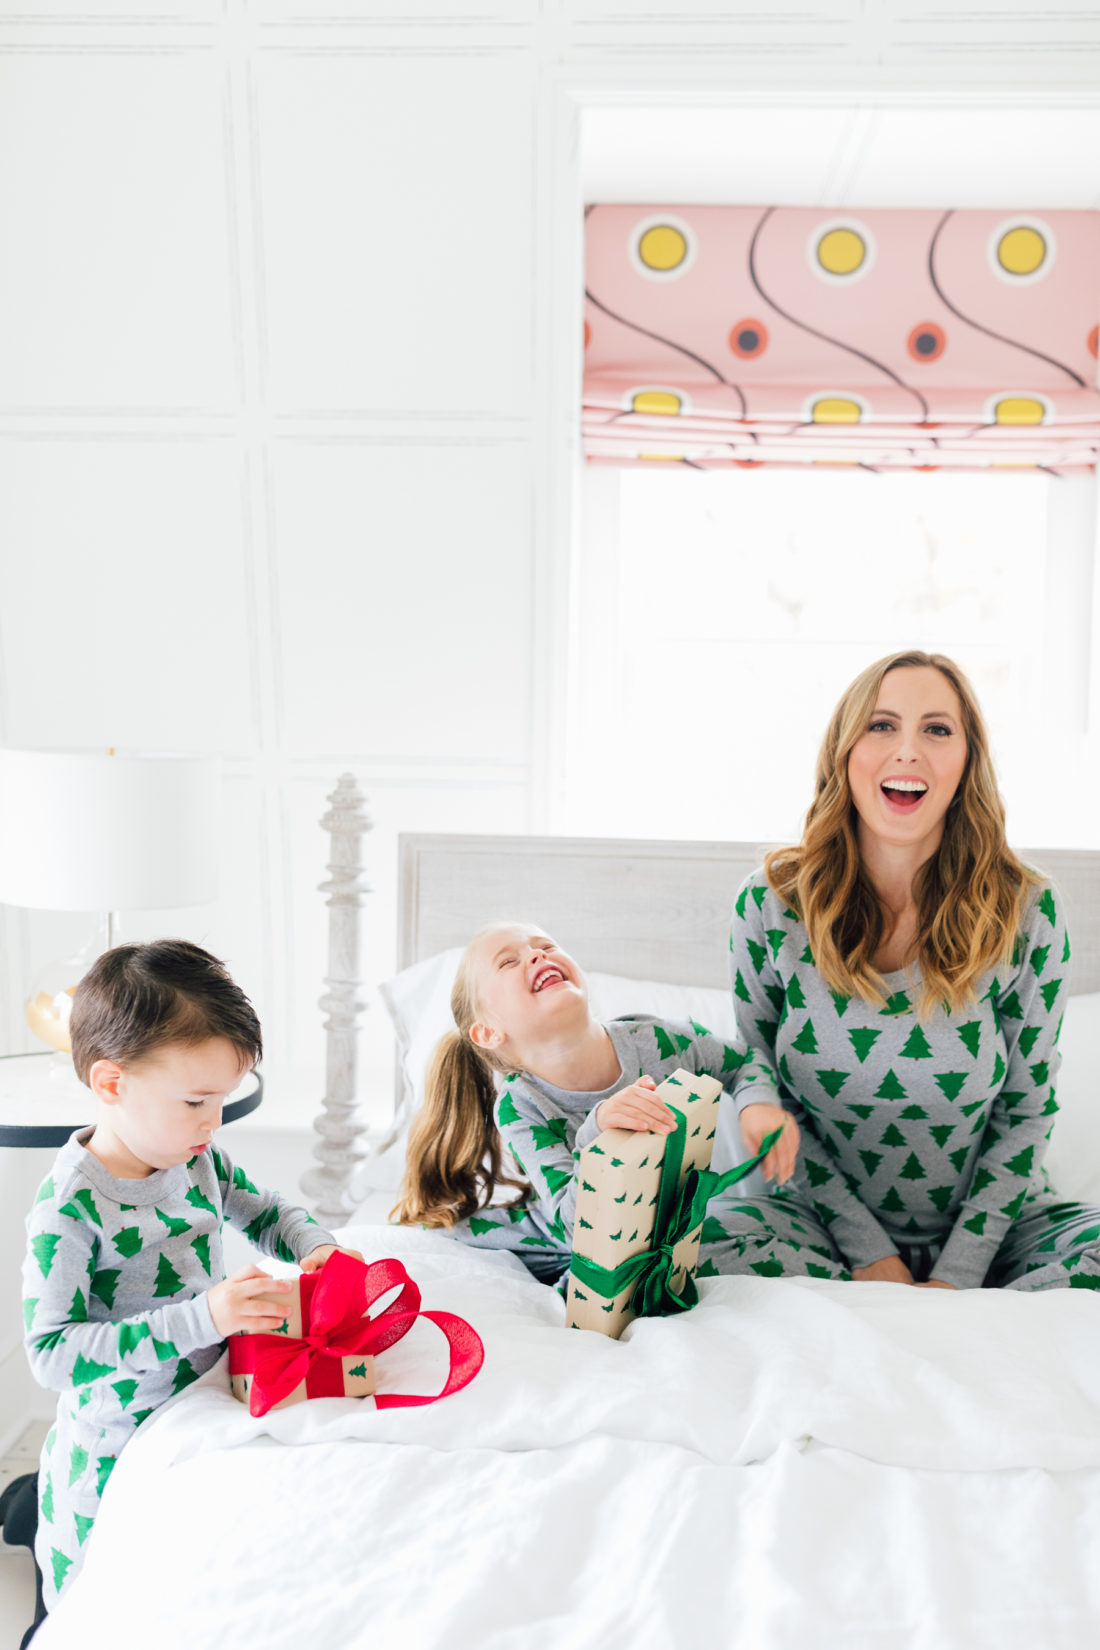 Eva Amurri Martino shares her tips for Nailing Family Photos